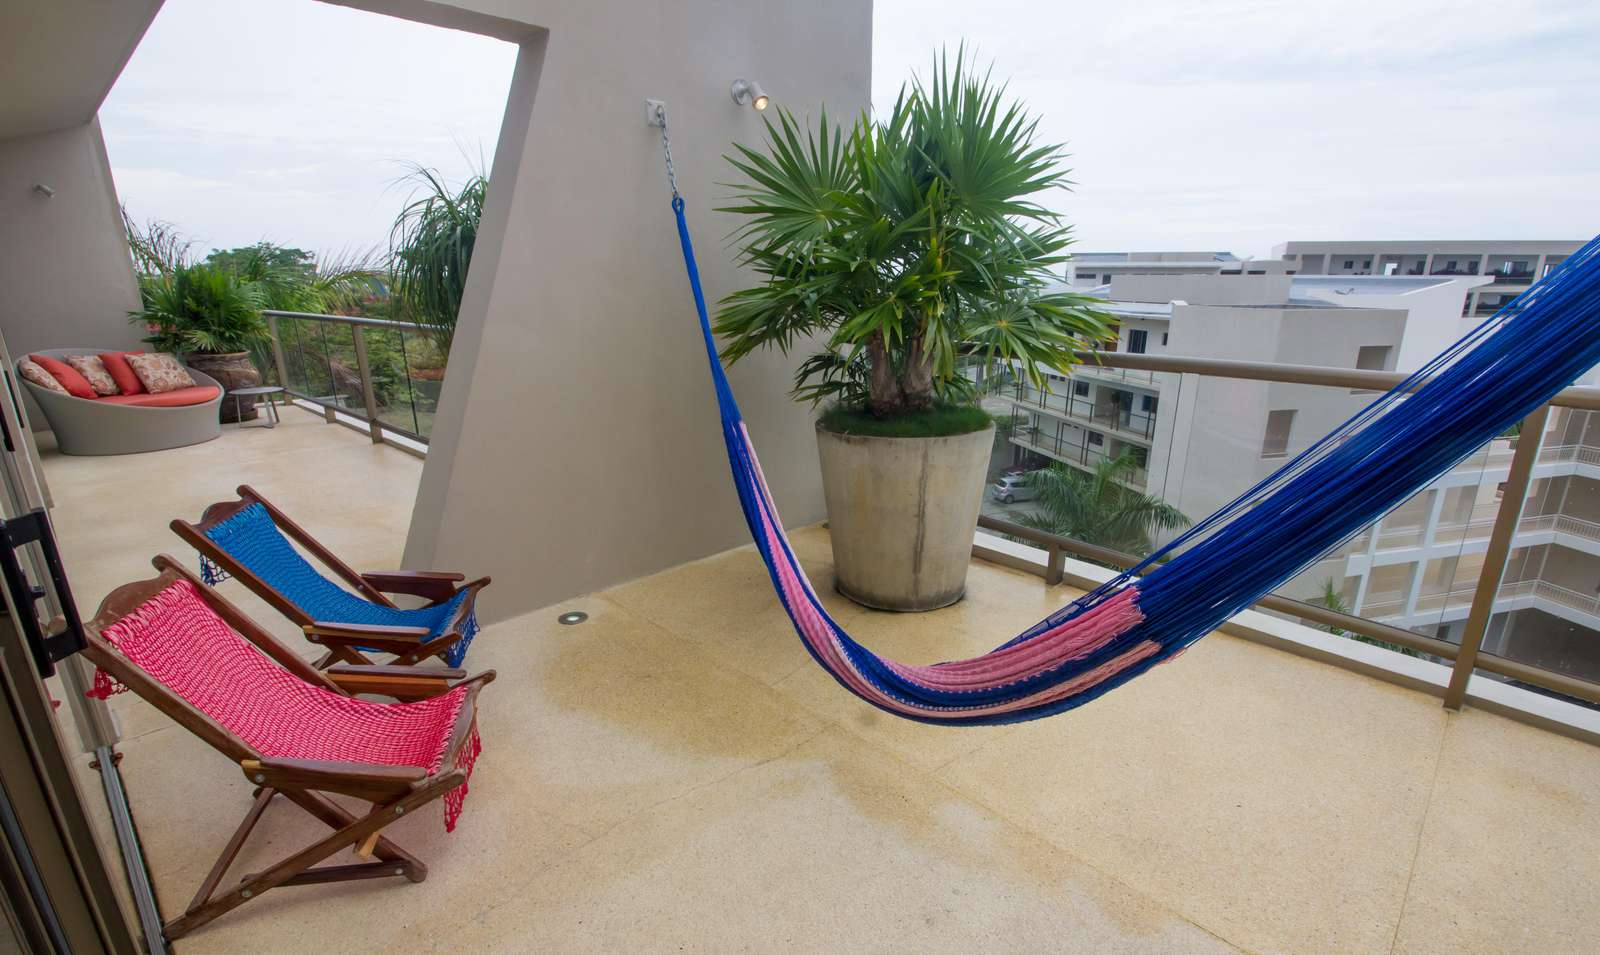 Relax in the hammock or lounge chairs on the terrace